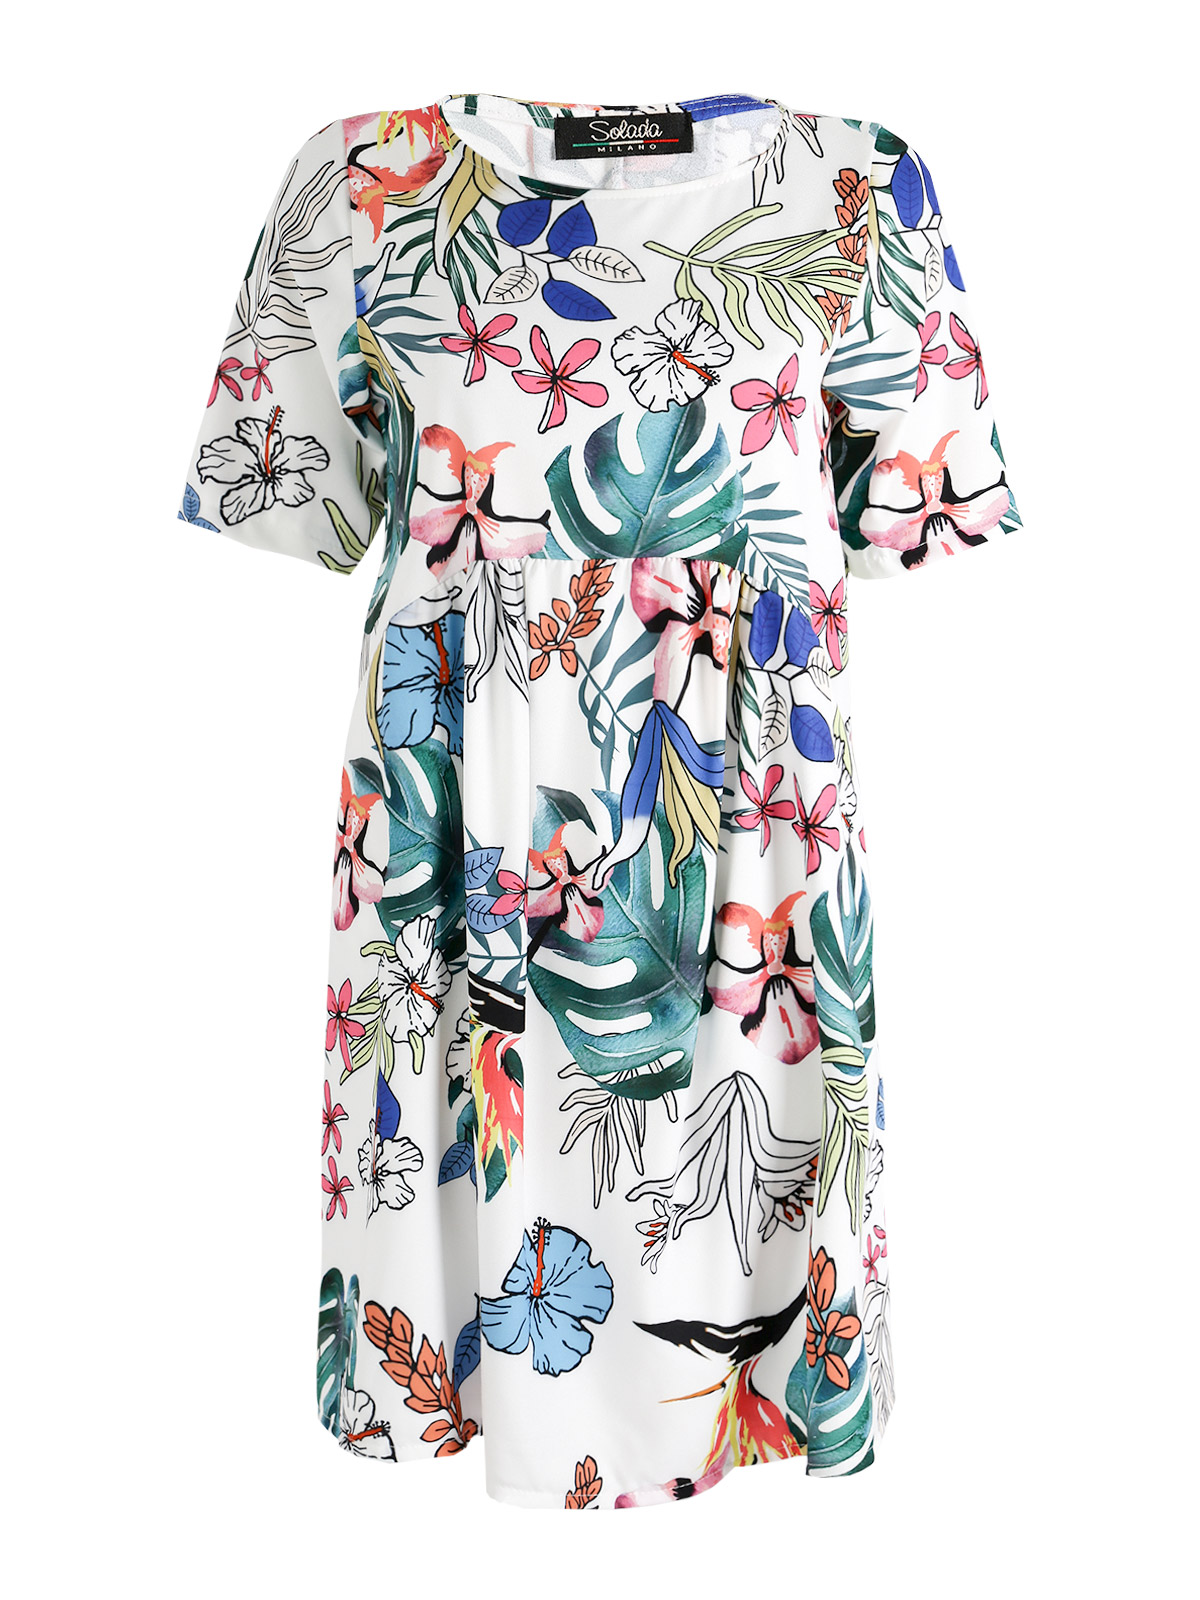 Fleurs Robe Des Flare Robe Flare Avec 87nqpTTOx